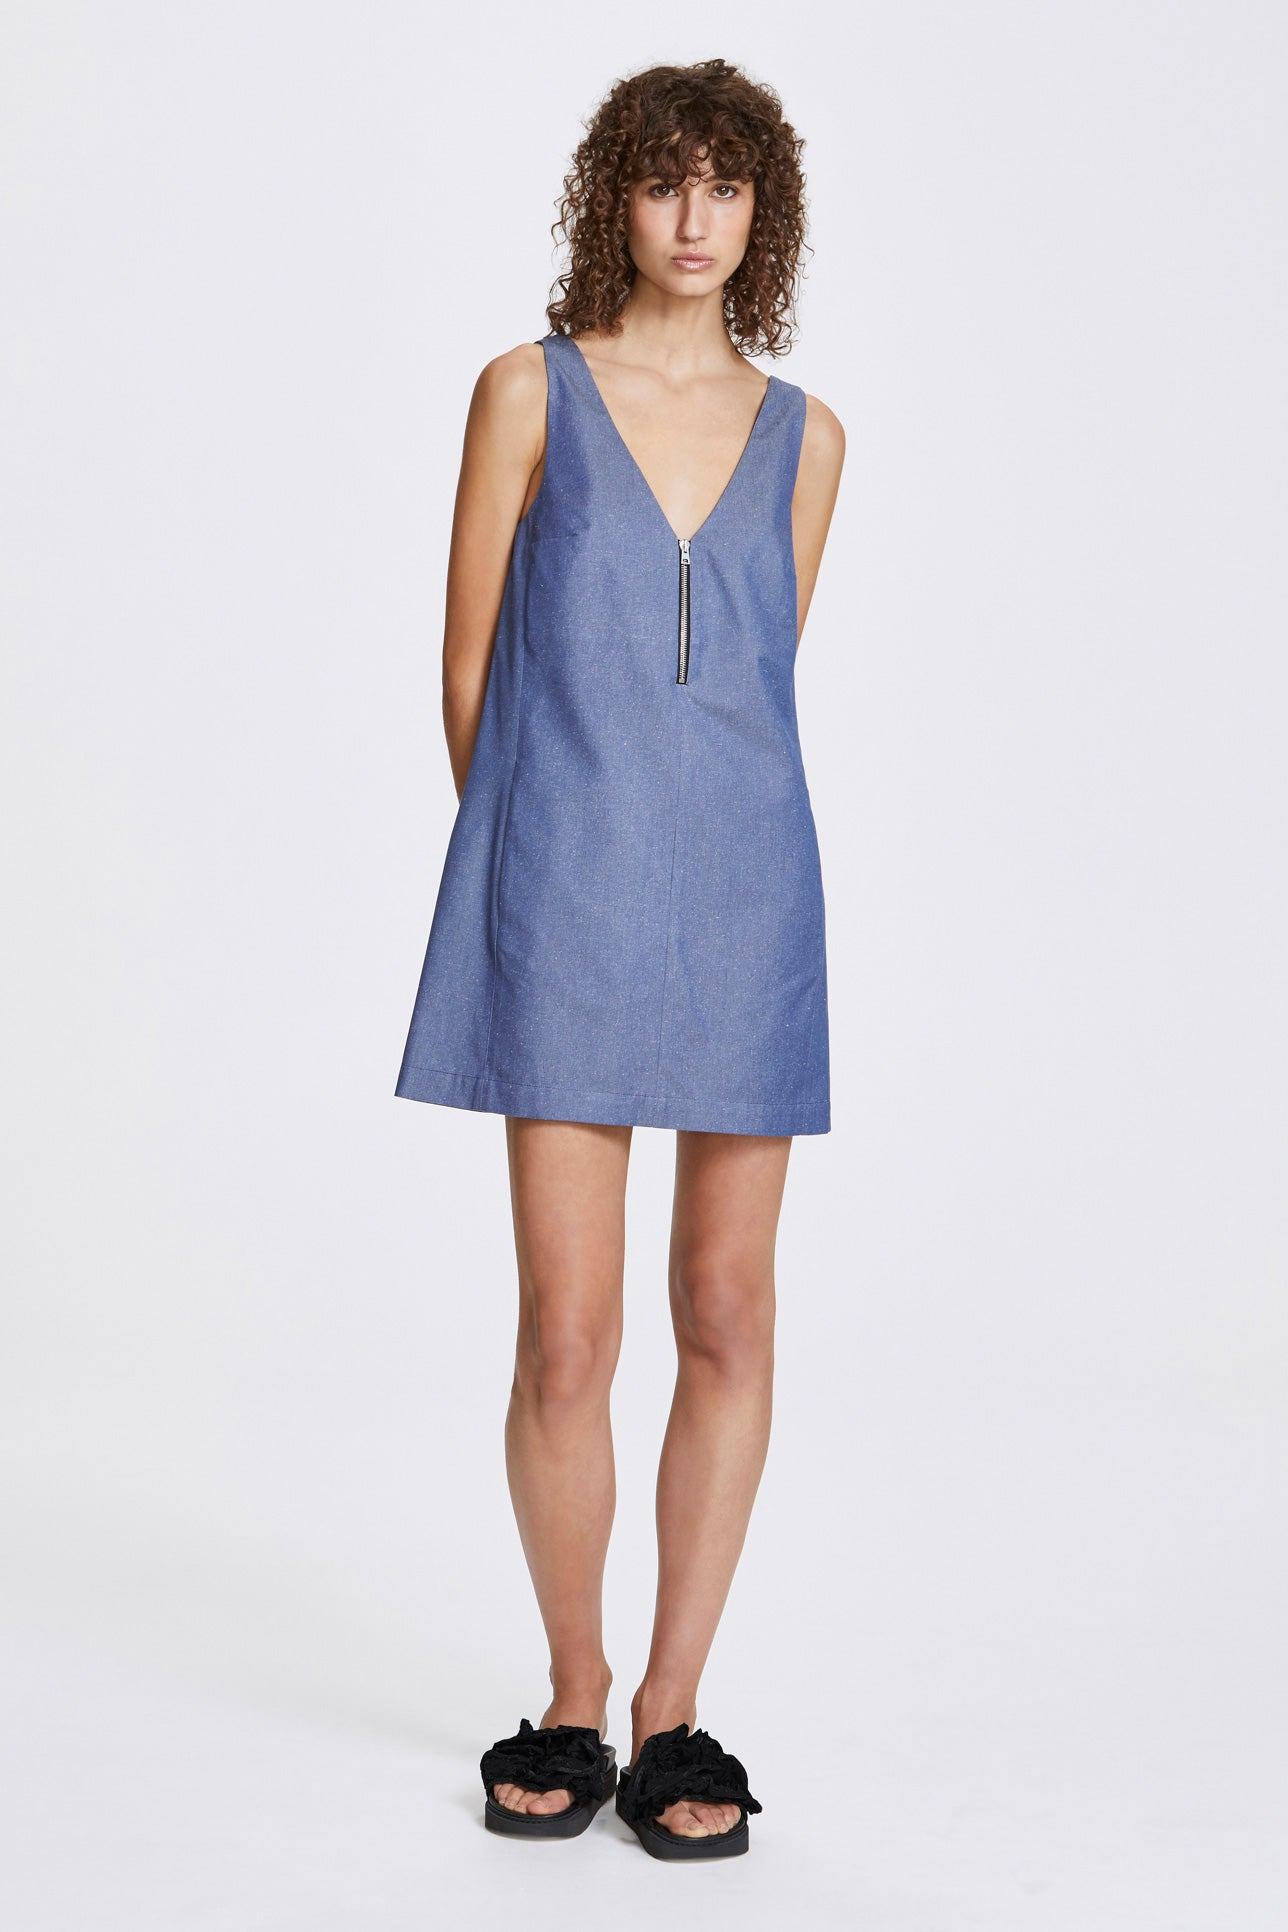 Zip a-line dress - Silk cotton - Blue denim - Resortwear dress - Her Line